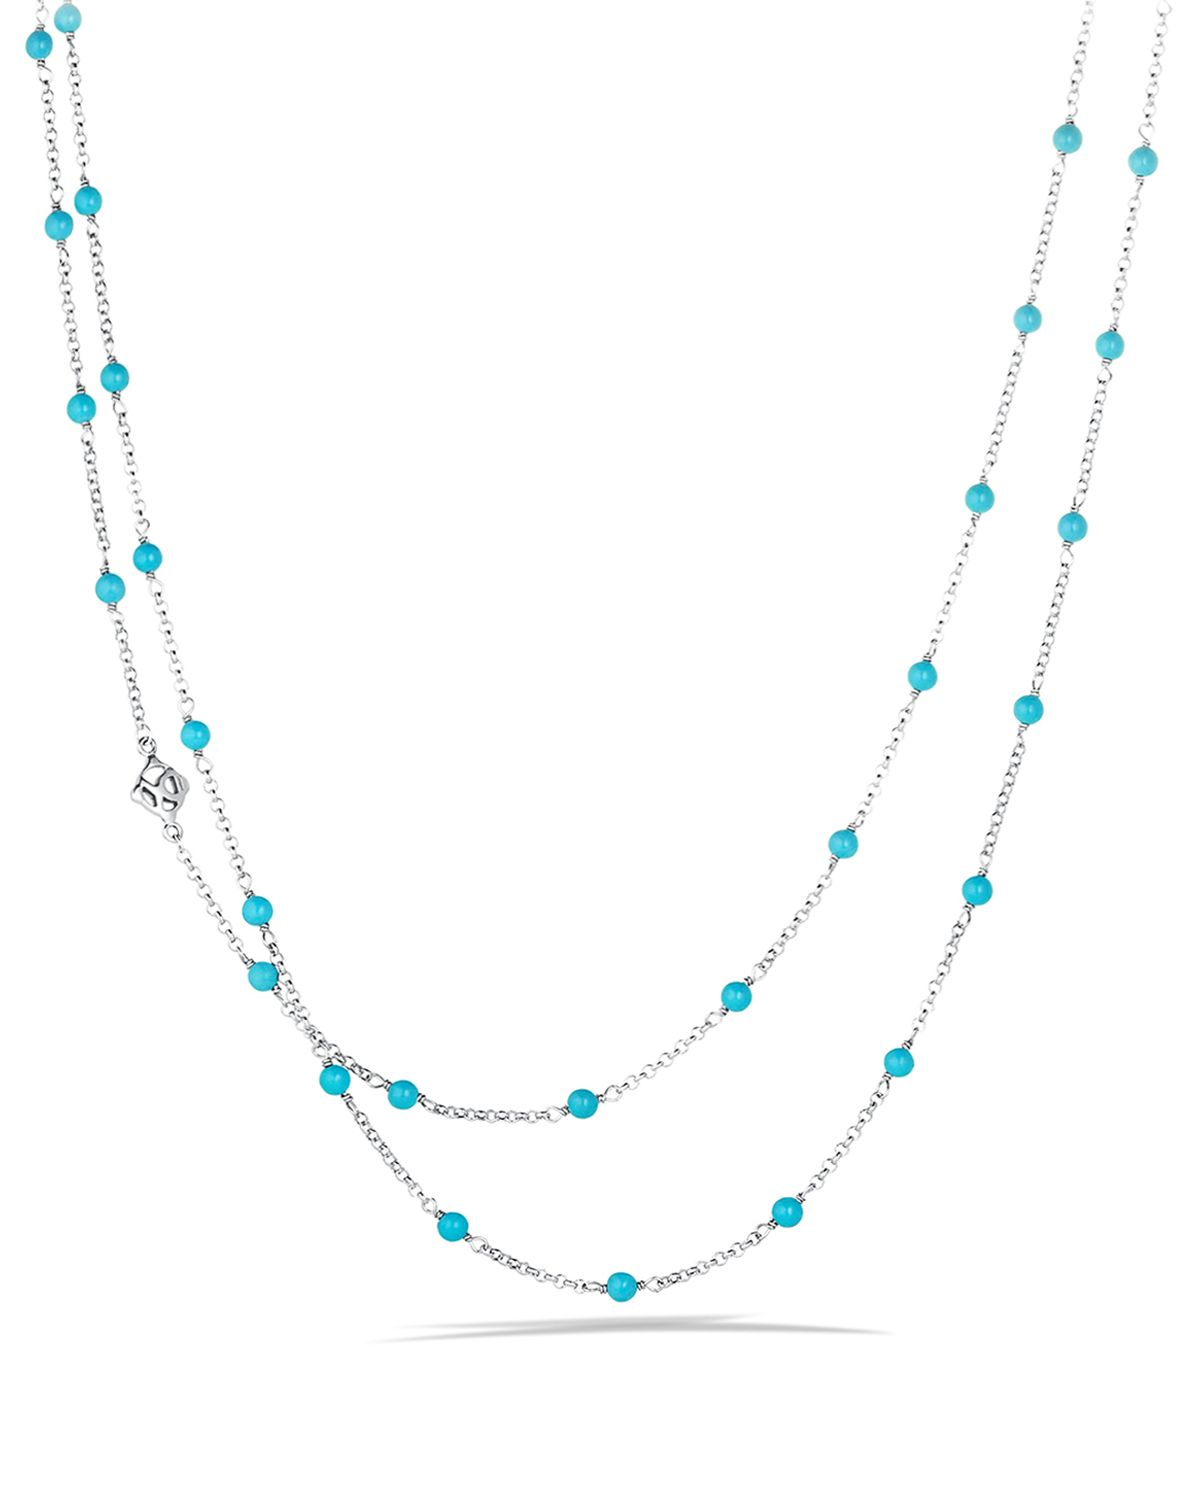 Lyst David Yurman Chain Necklace With Turquoise Beads In